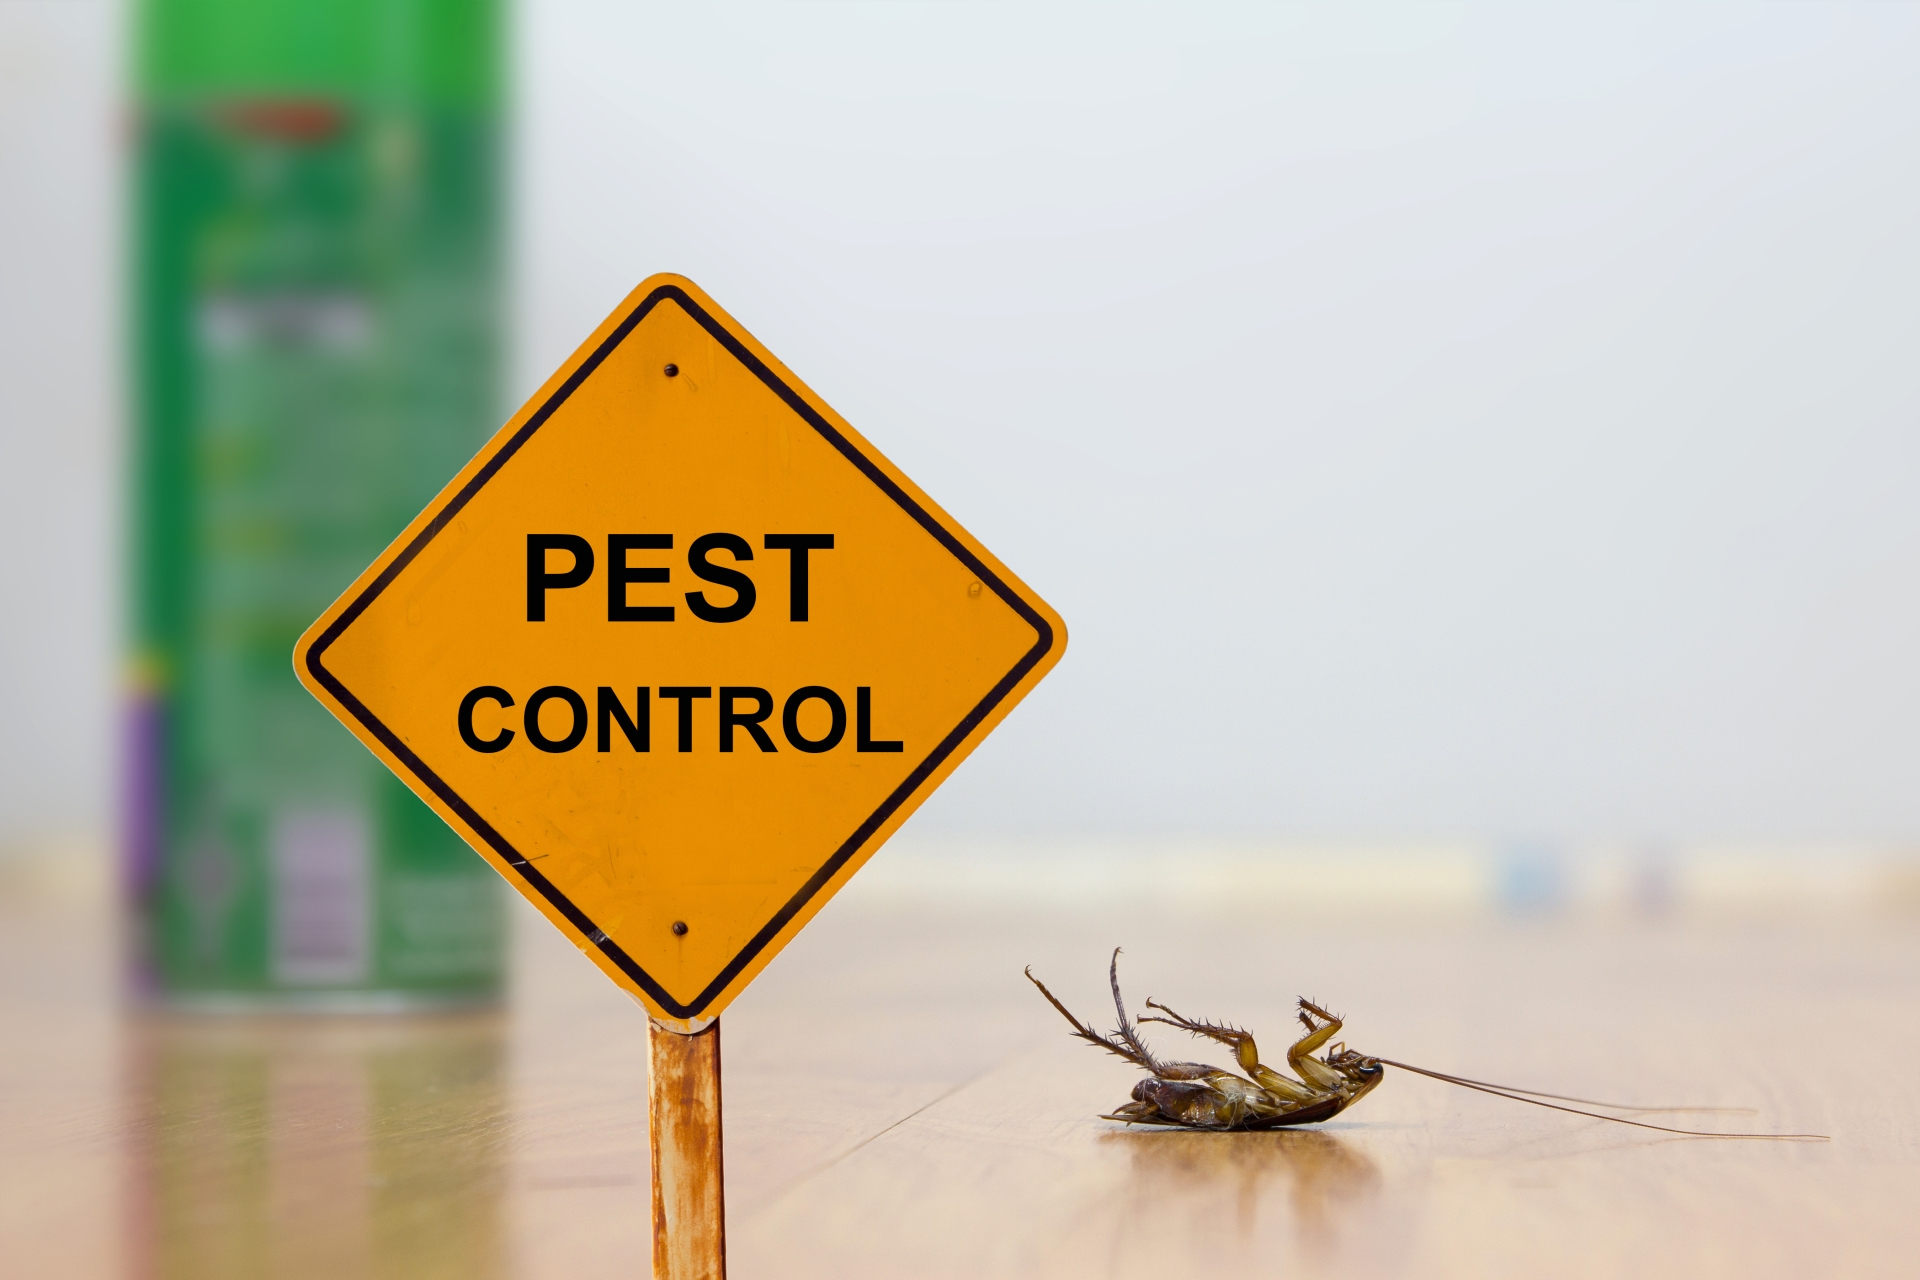 24 Hour Pest Control, Pest Control in Hanwell, W7. Call Now 020 8166 9746